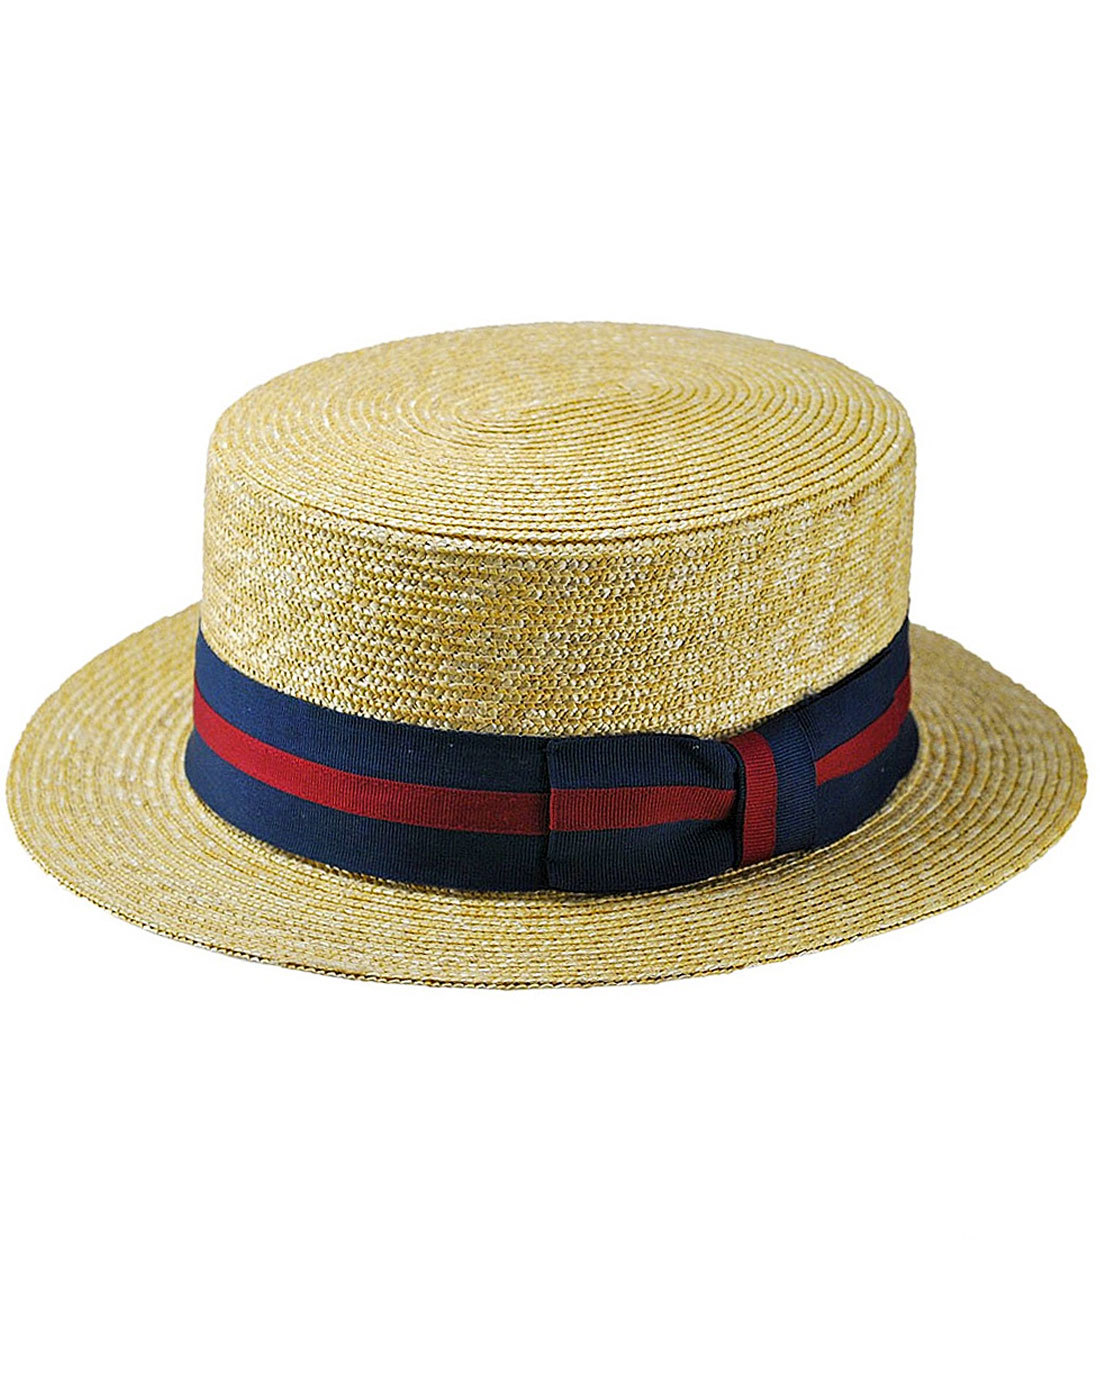 2d1236bf FAILSWORTH Men's Retro Stripe Band Oxford Straw Boater Hat